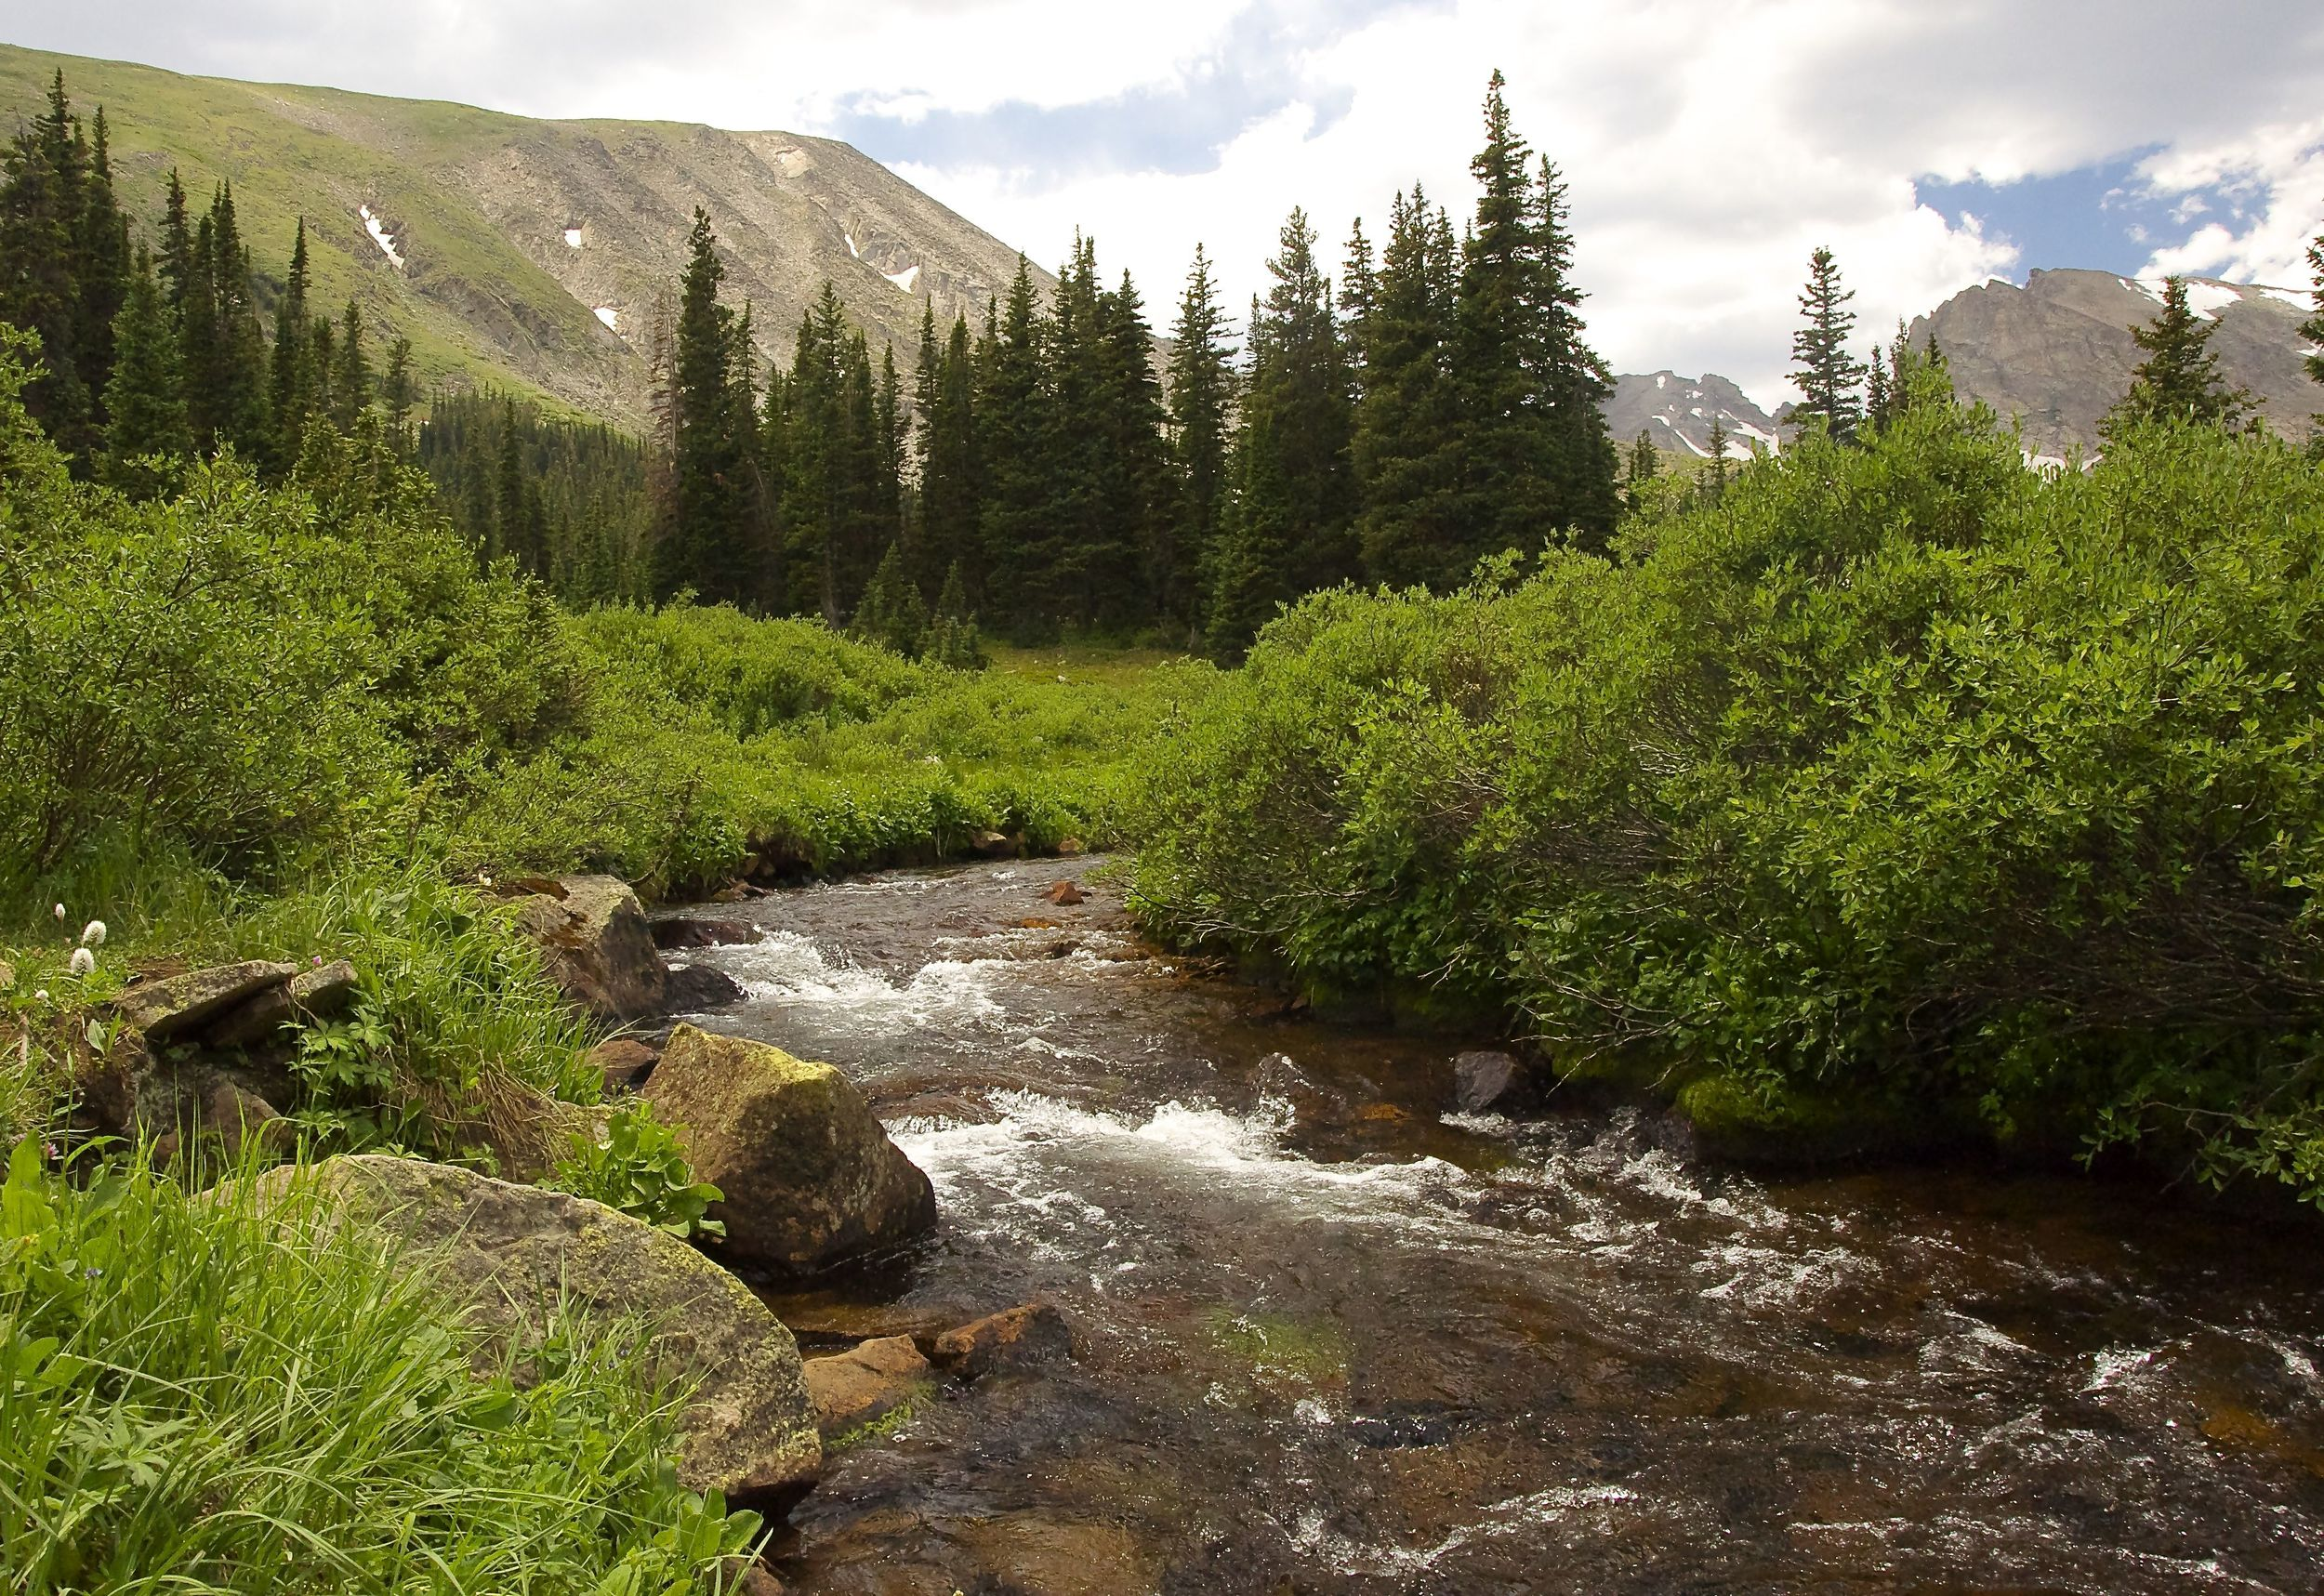 Long Lake's streams and wildflowers are perfect for lovers!